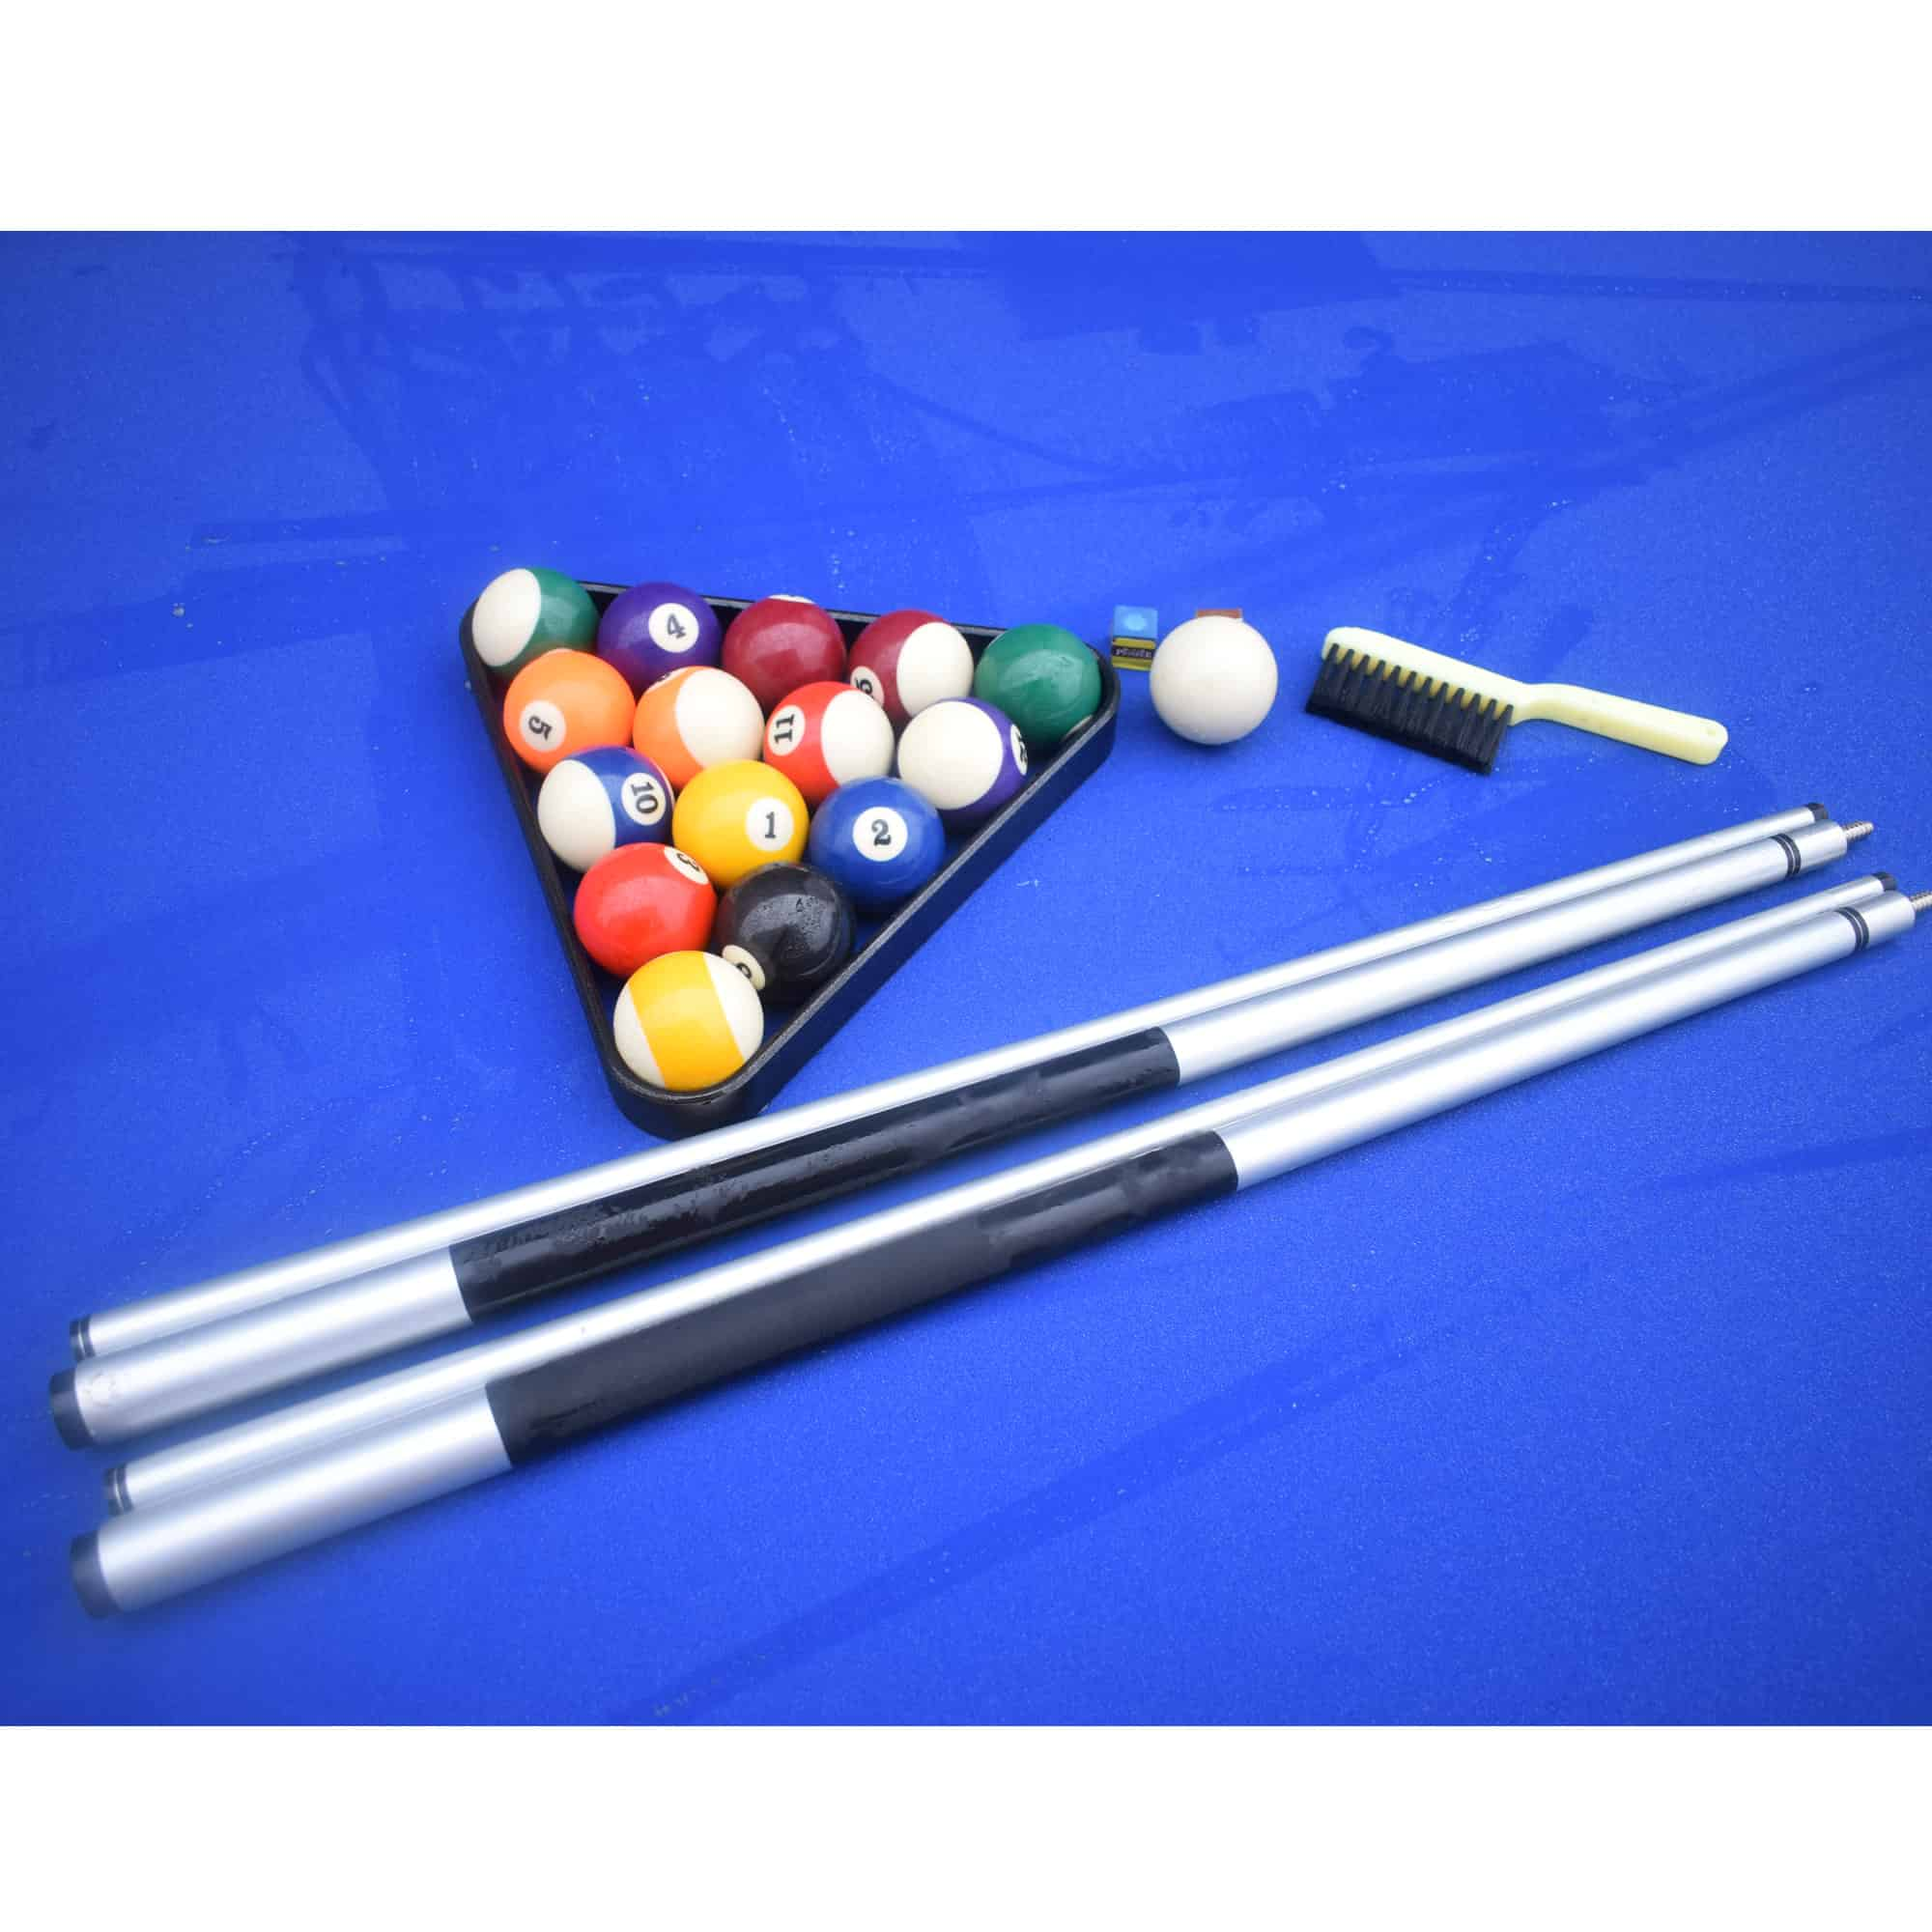 Alpine 8 Ft Outdoor Pool Table With Aluminum Rails